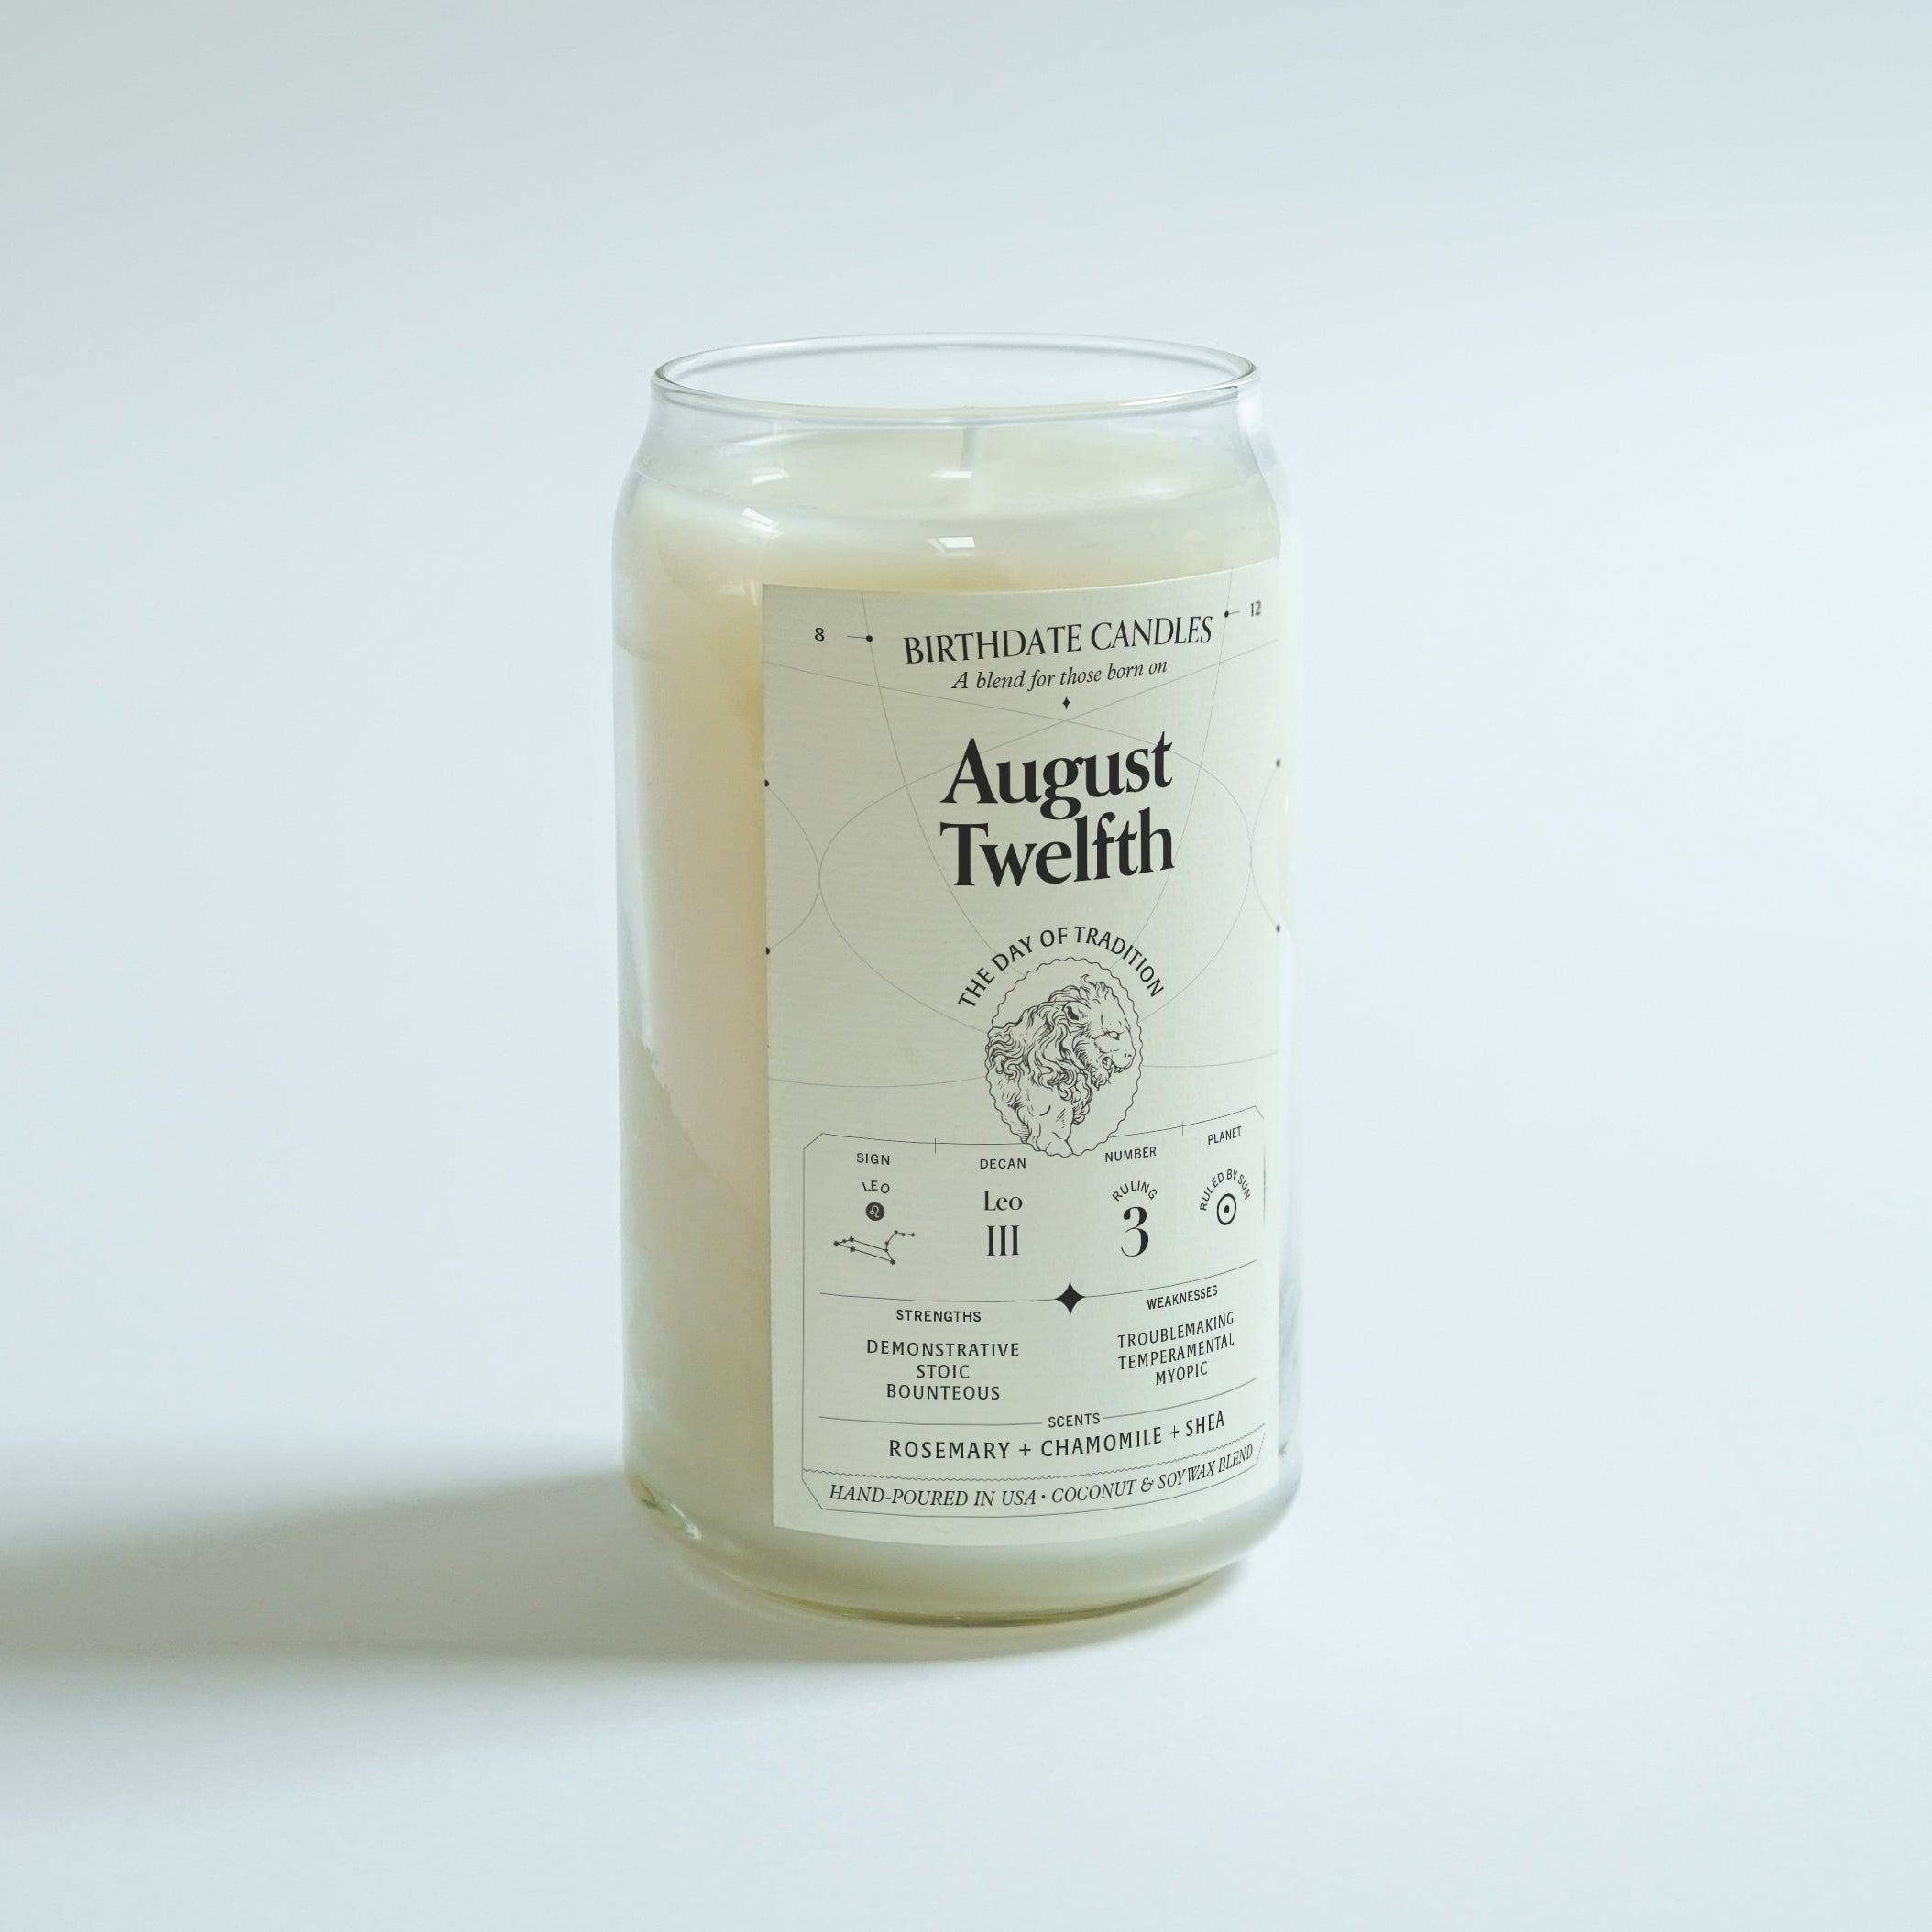 The August Twelfth Candle